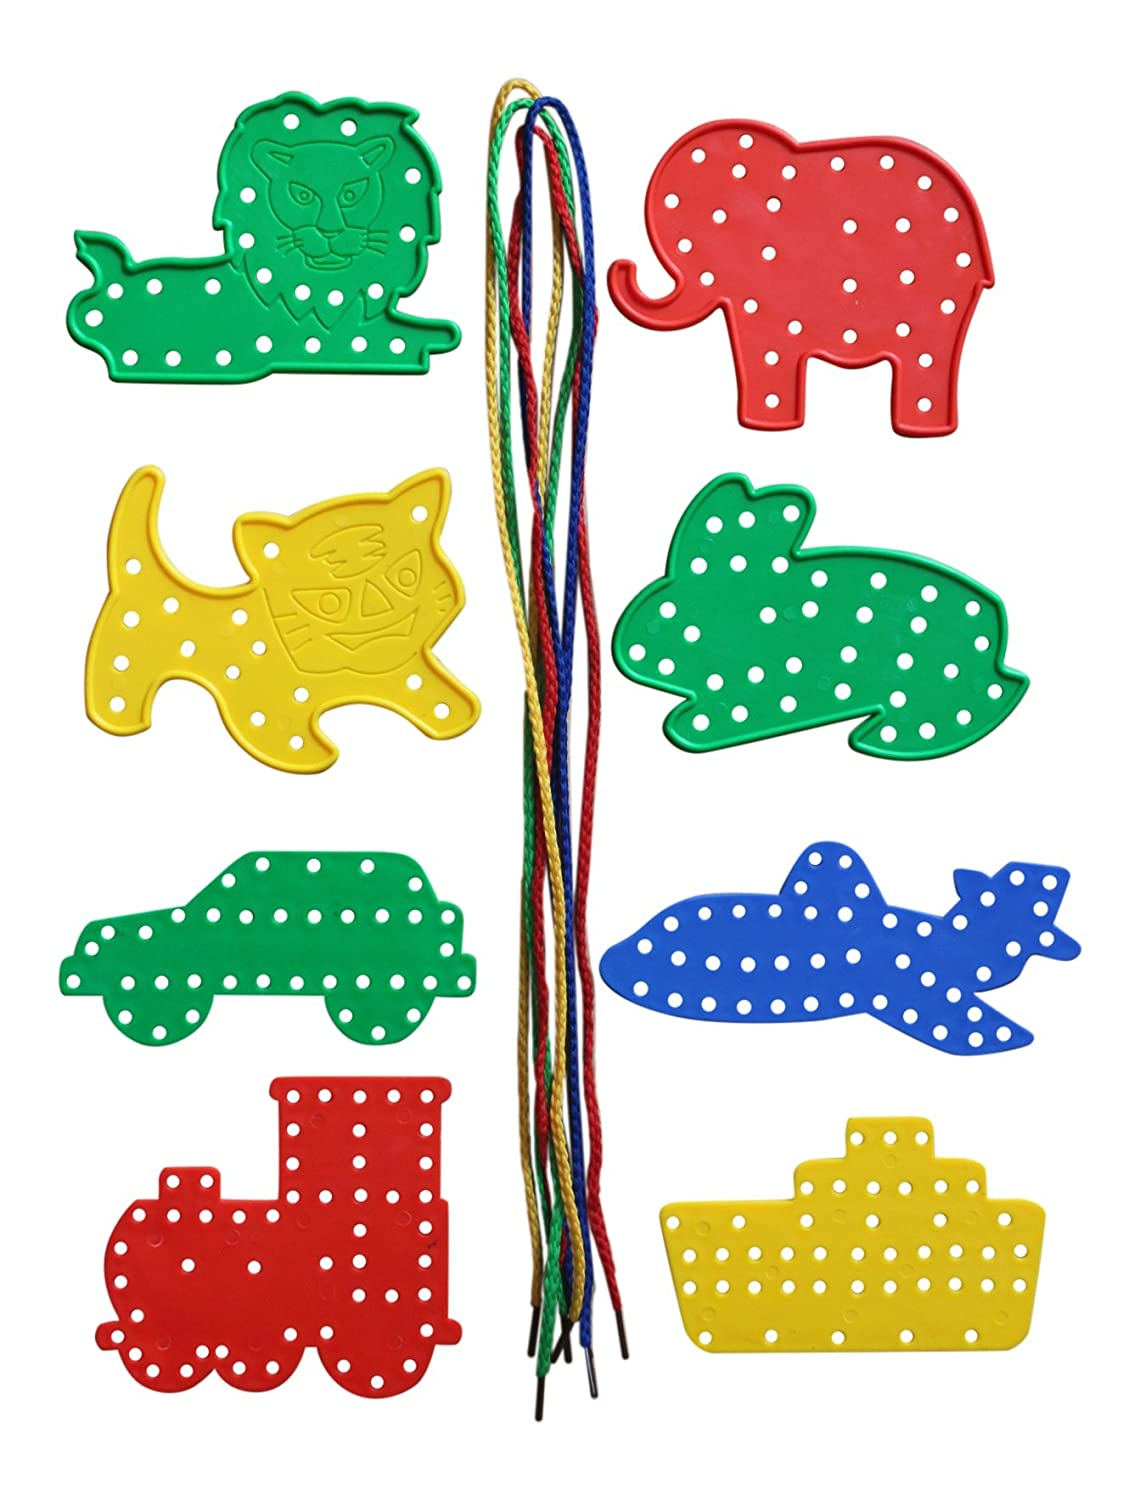 8 Threading Shapes, Animals And Transport Toy Kids B Crafty